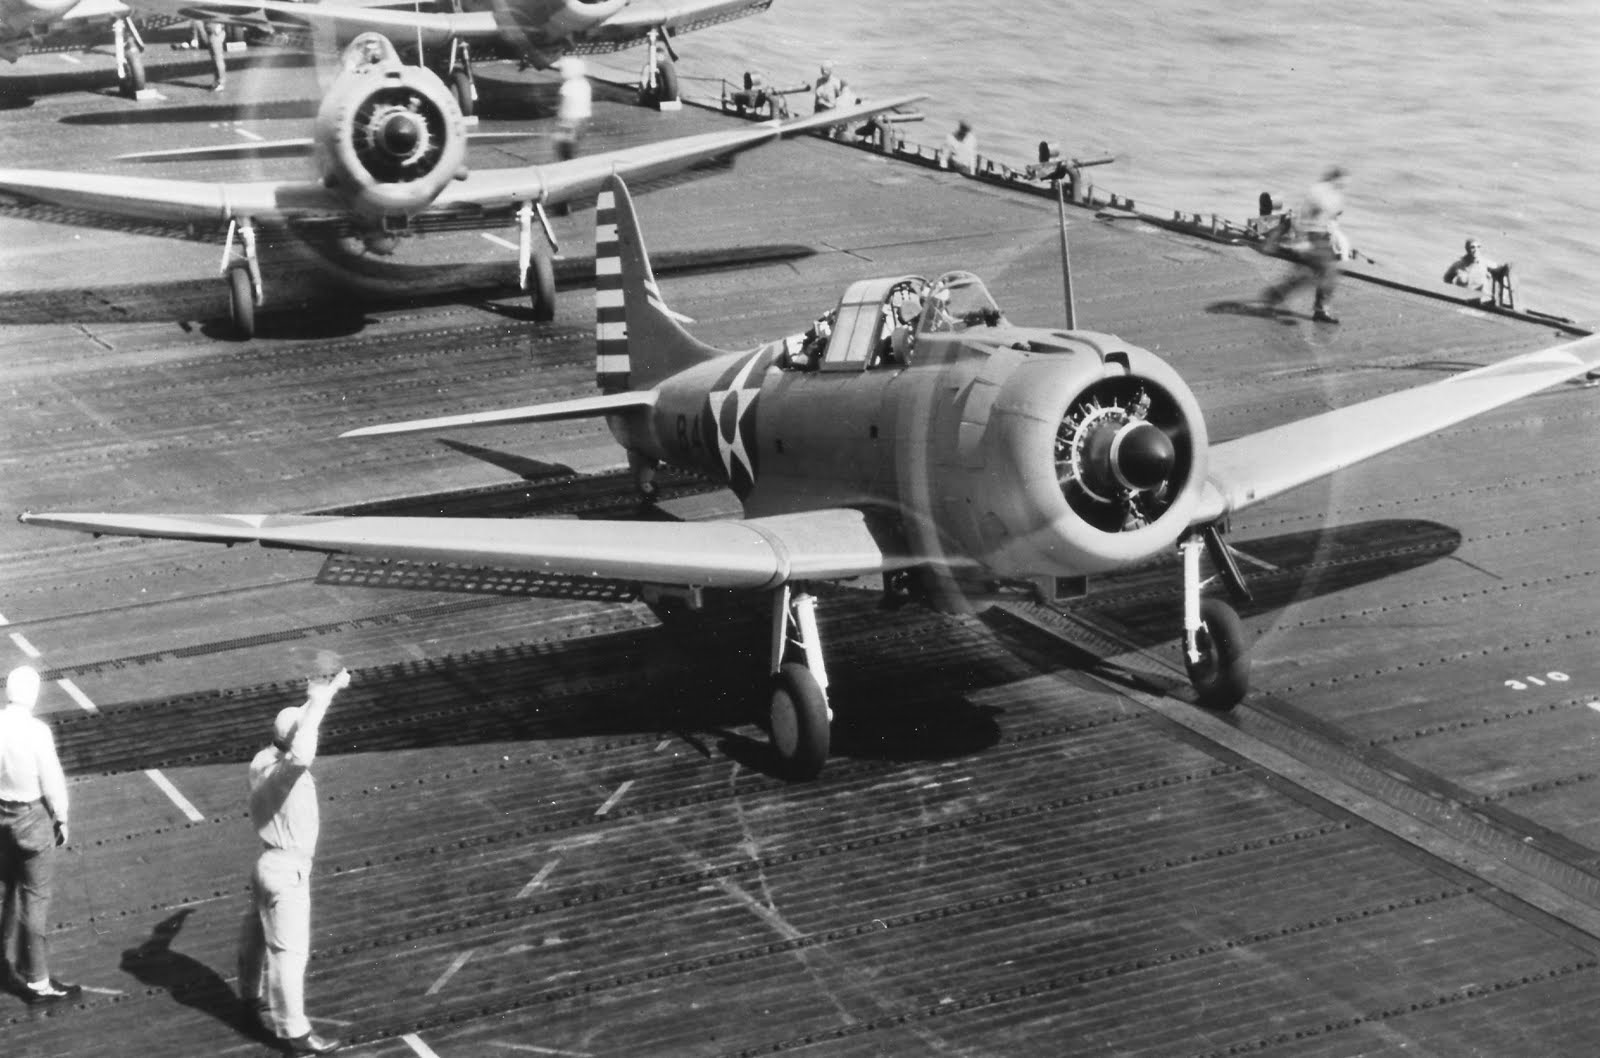 SBD-3 Dauntless dive-bombers prepare for launch from carrier USS Enterprise, early 1942 (US National Archives)